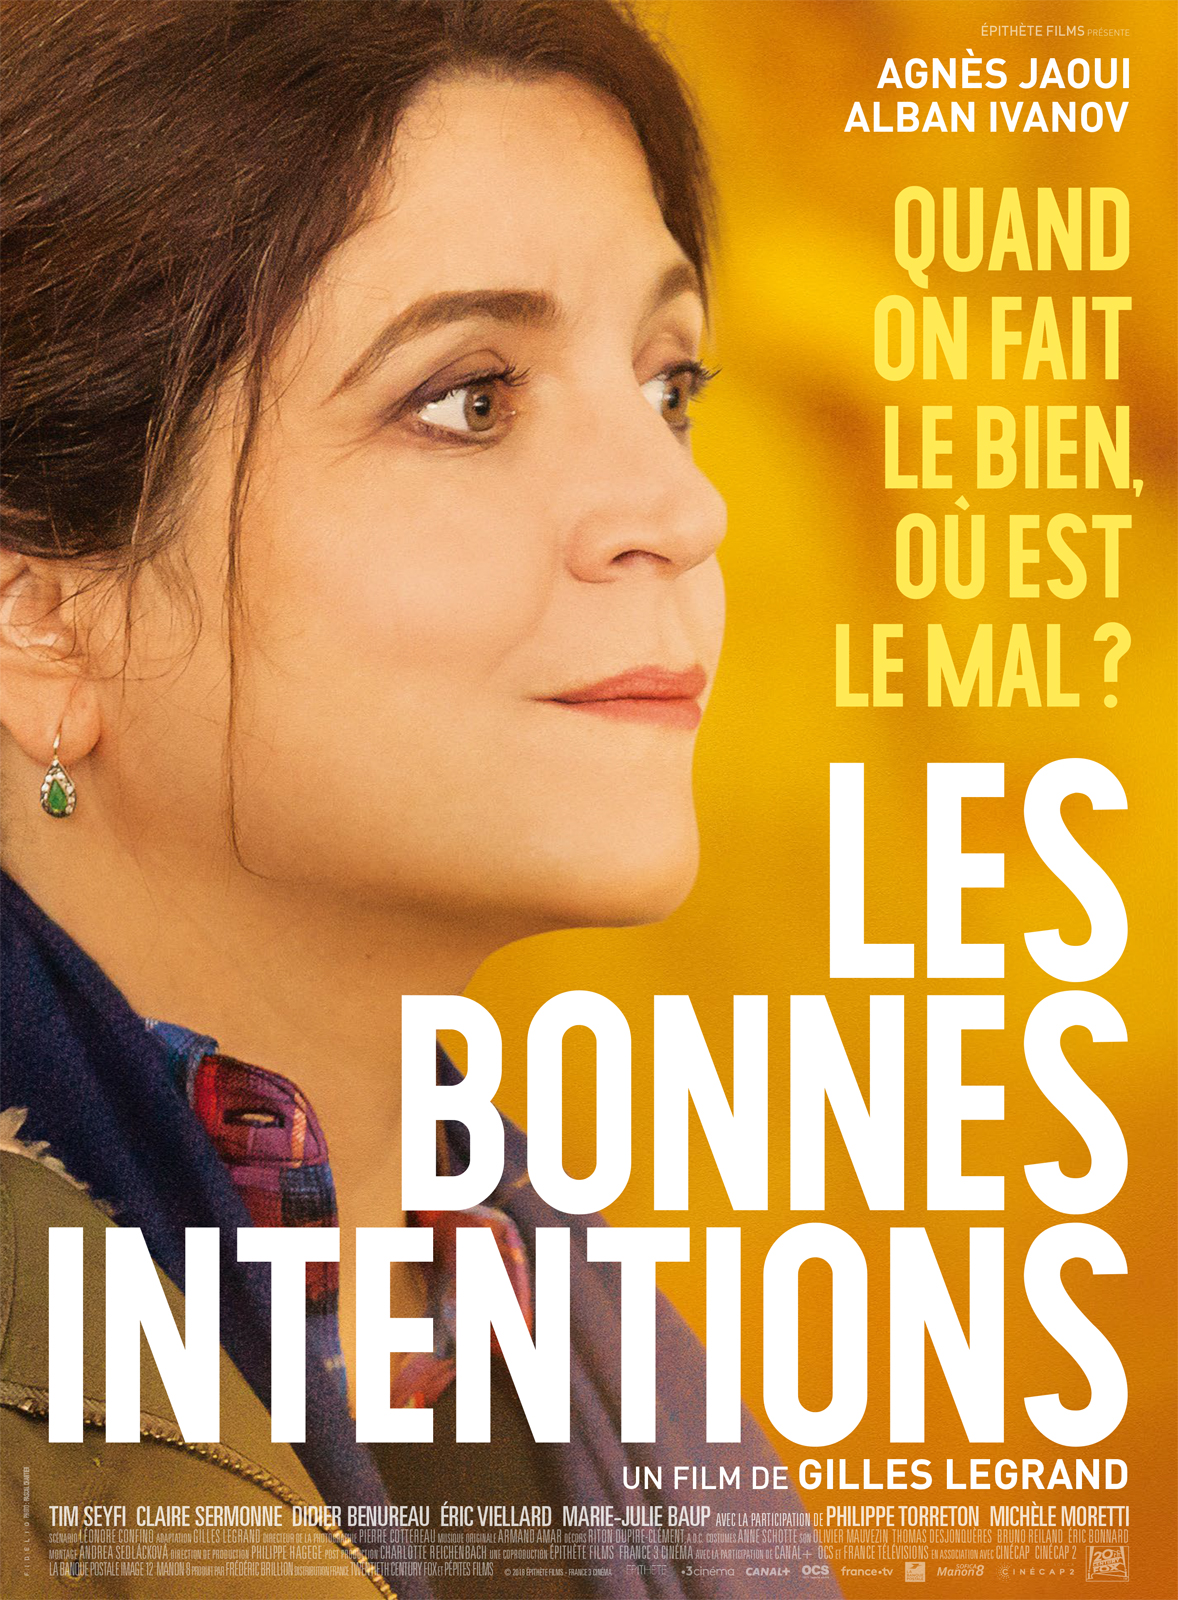 AfficheLes Bonnes intentions